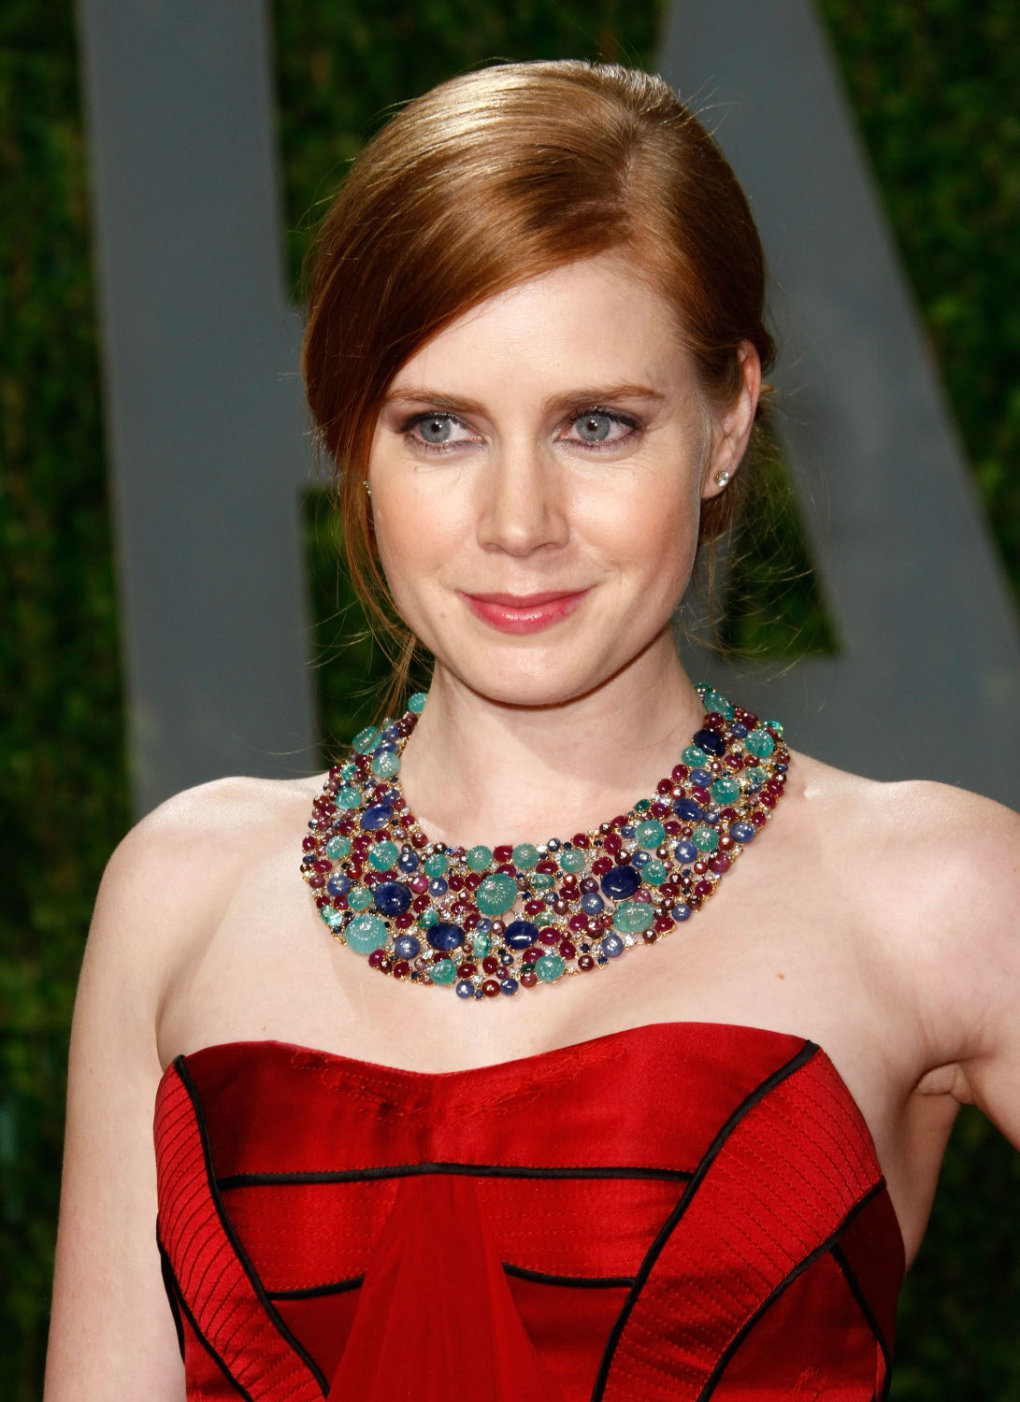 not quite your taste amy adams